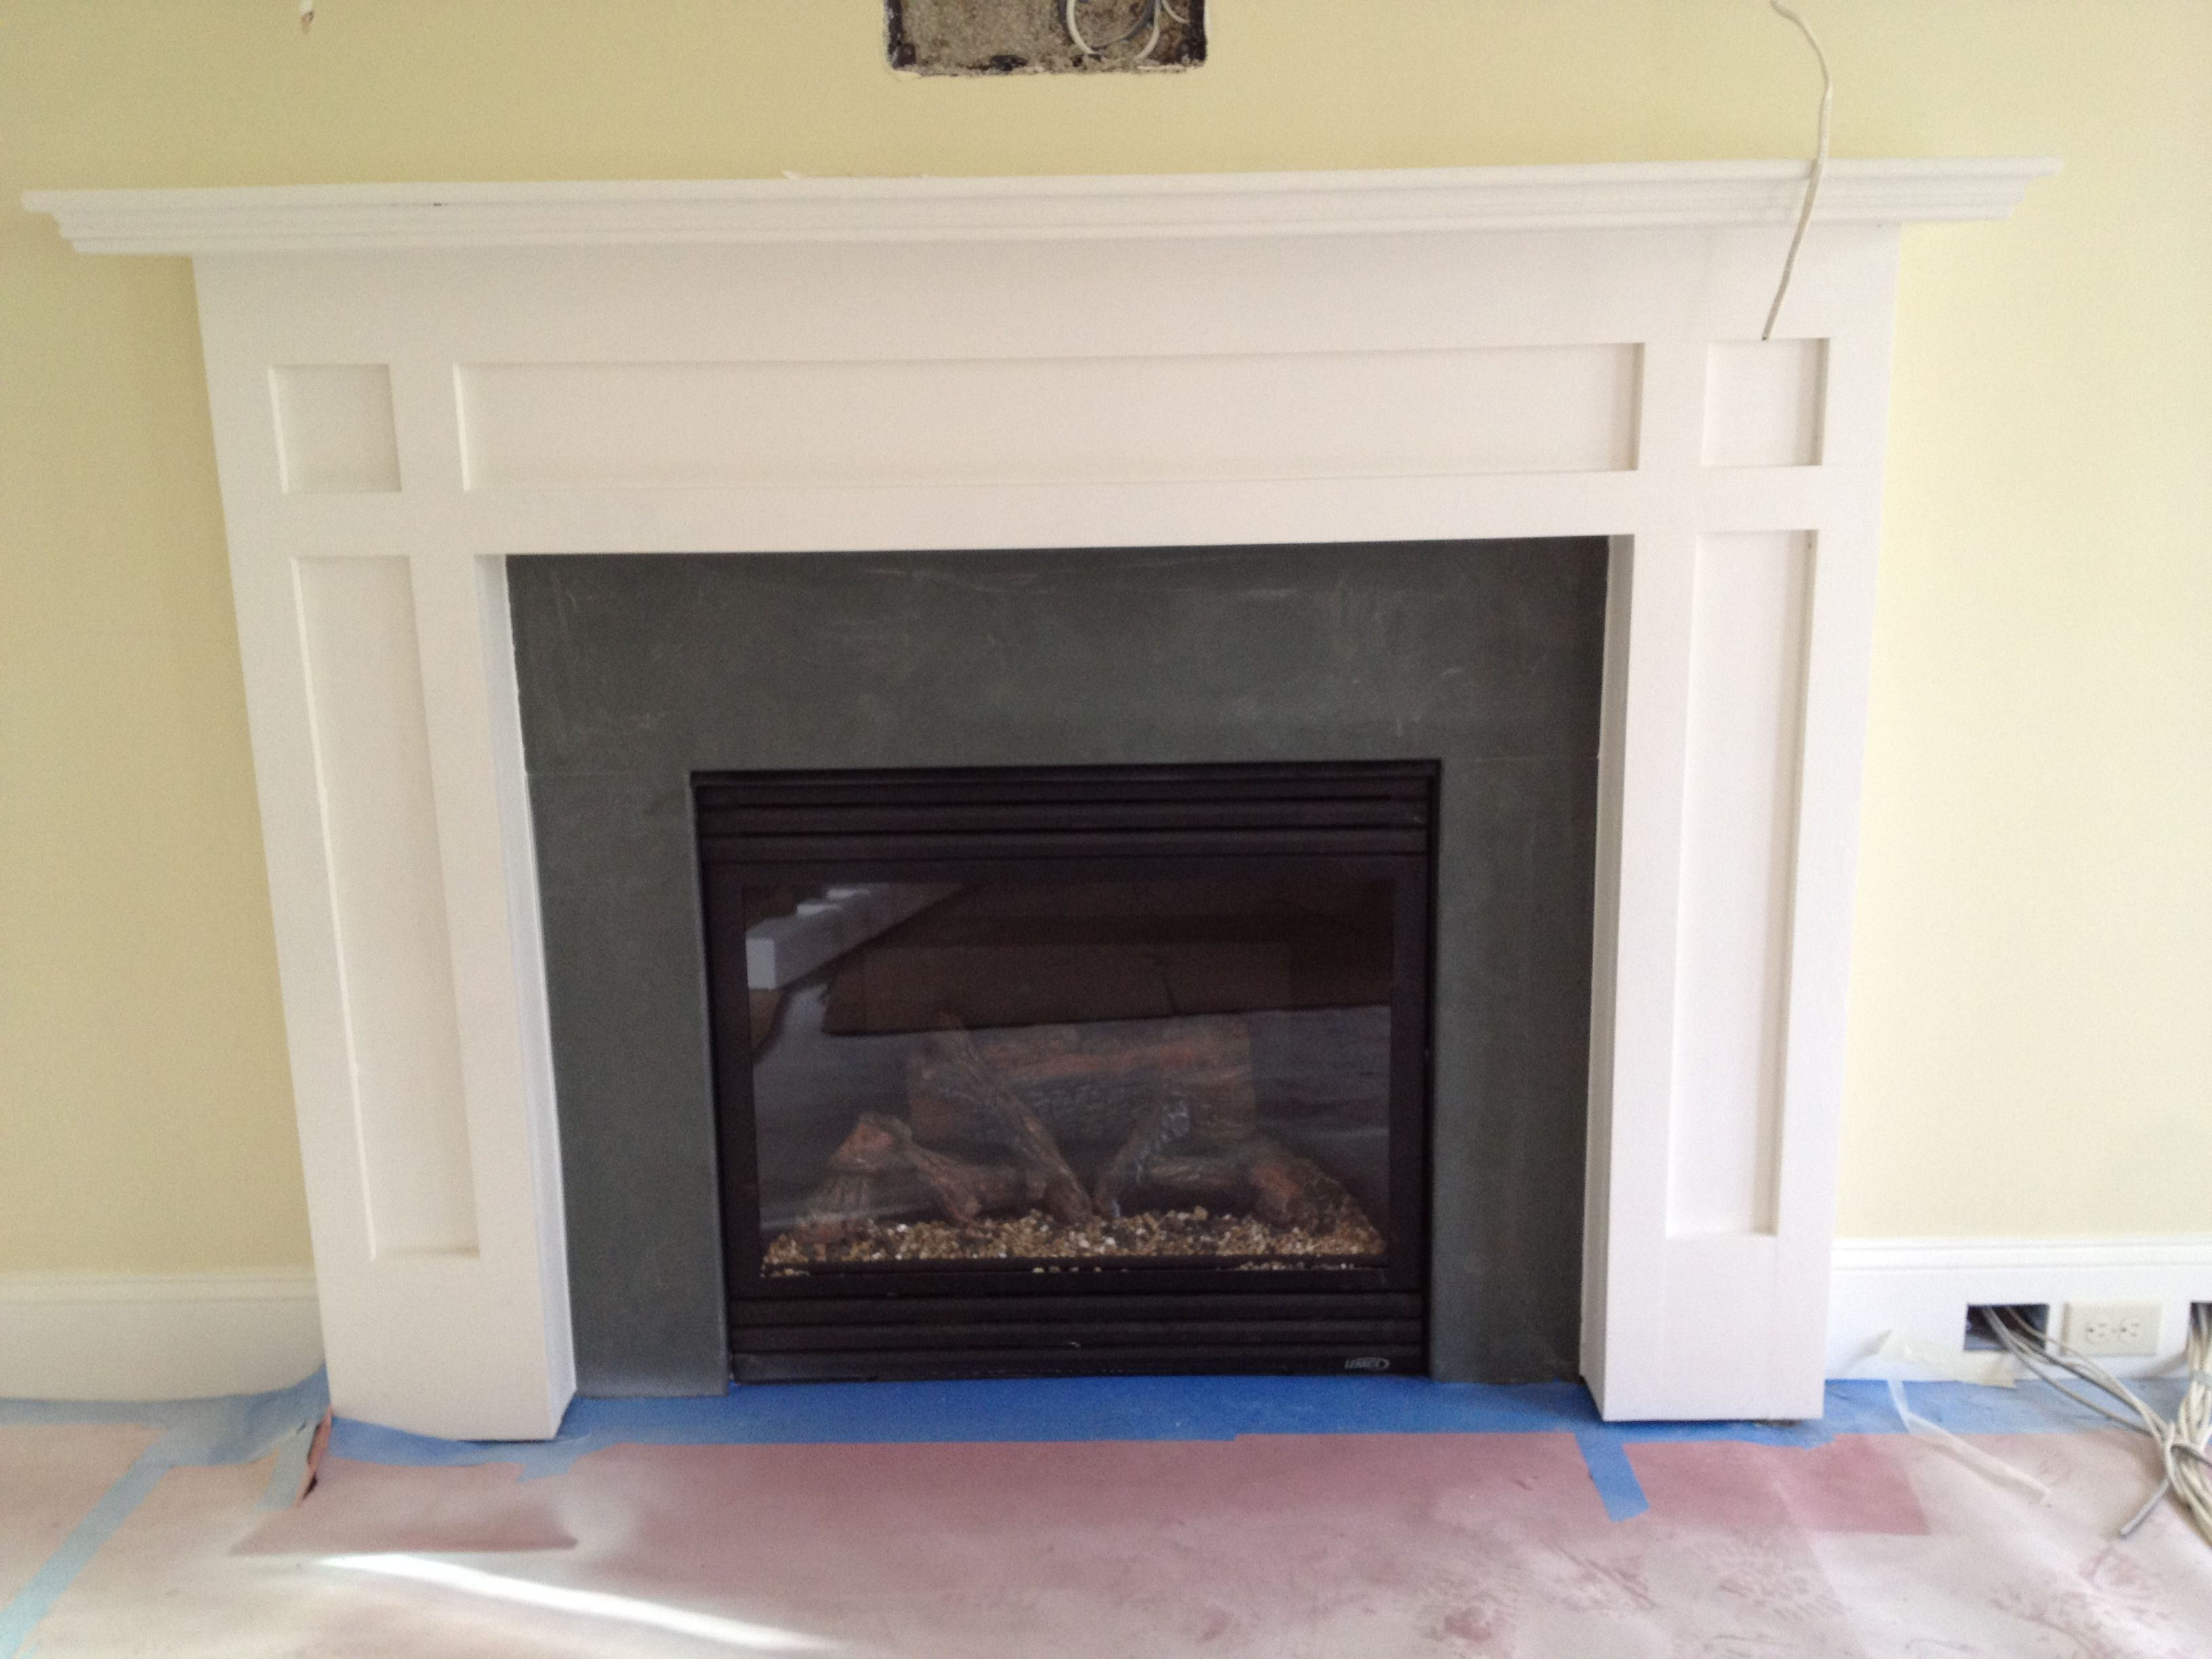 fireplace with green slate surround fireplaces pinterest slate slate fireplace surround. Black Bedroom Furniture Sets. Home Design Ideas